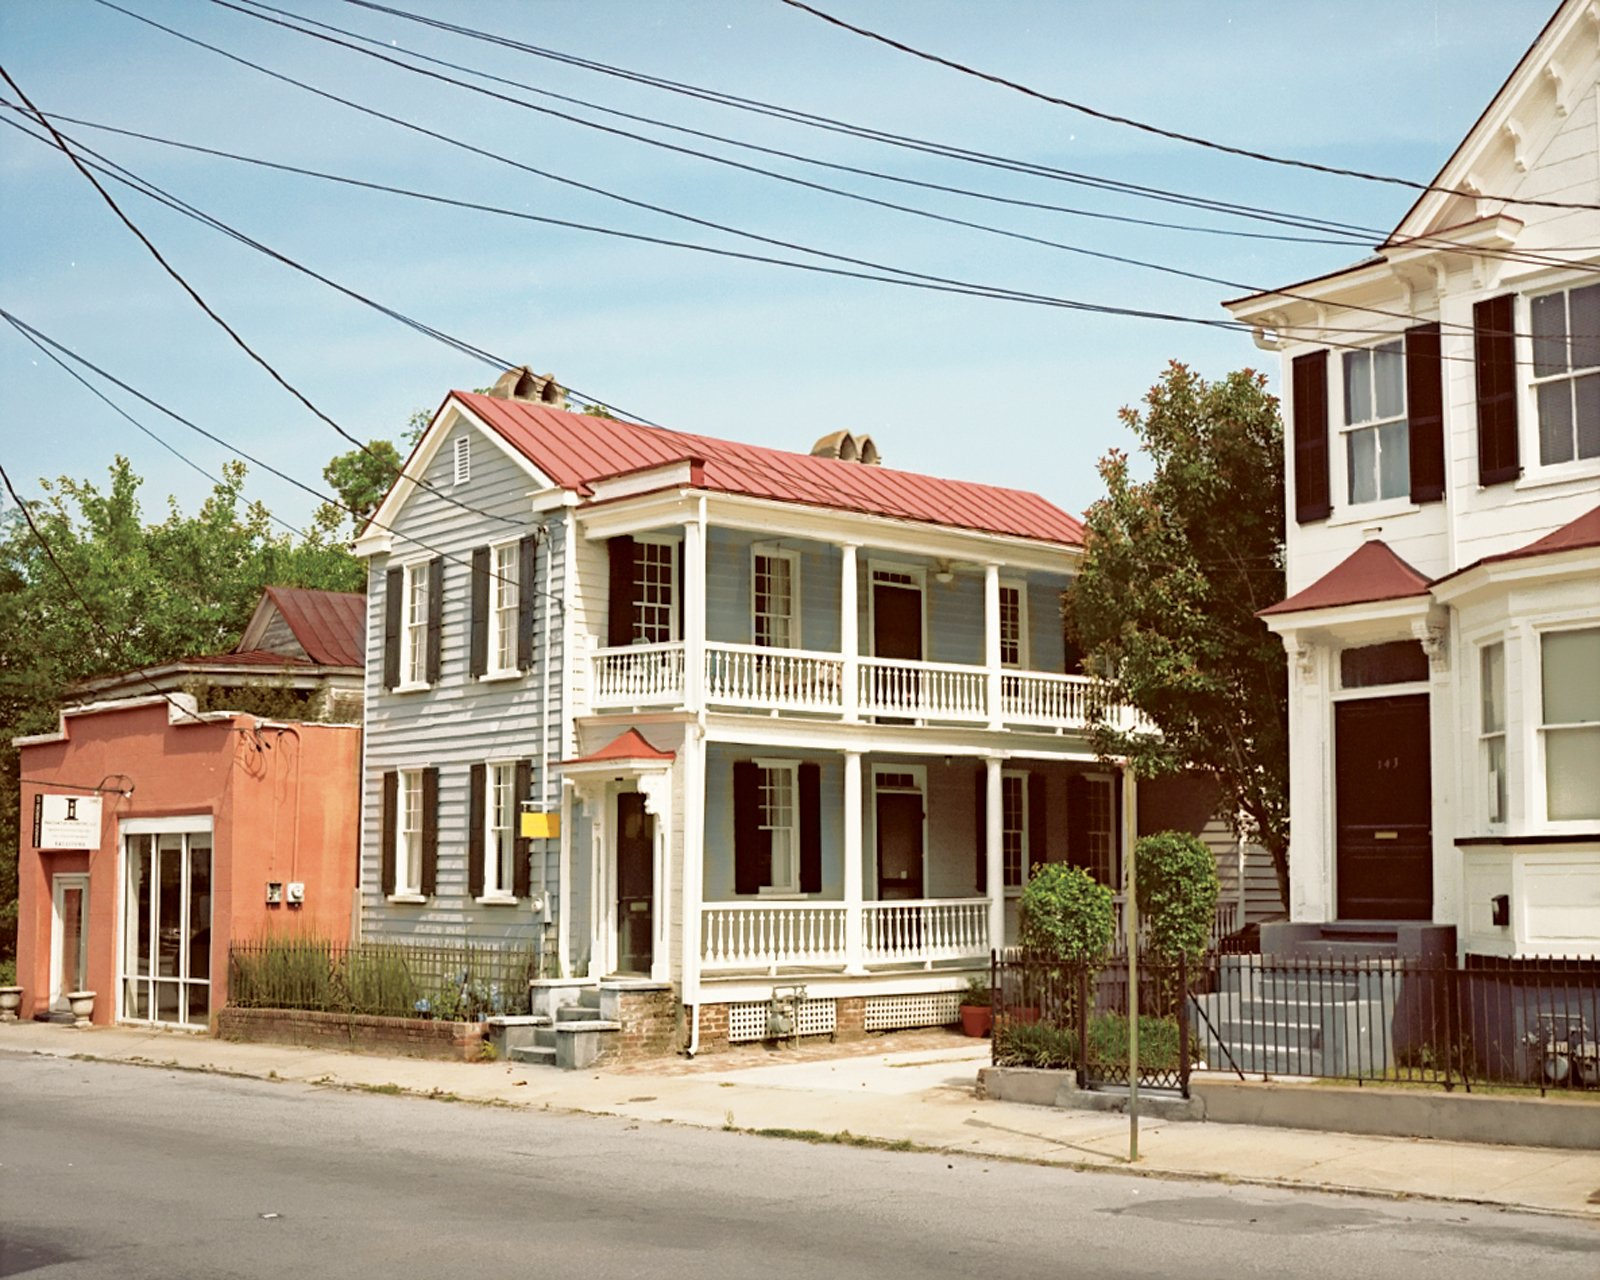 """The nineteenth-century structure is commonly known as a classic """"Charleston single"""".  12 Porches Across America by Diana Budds from Raise High the Roof Beams"""